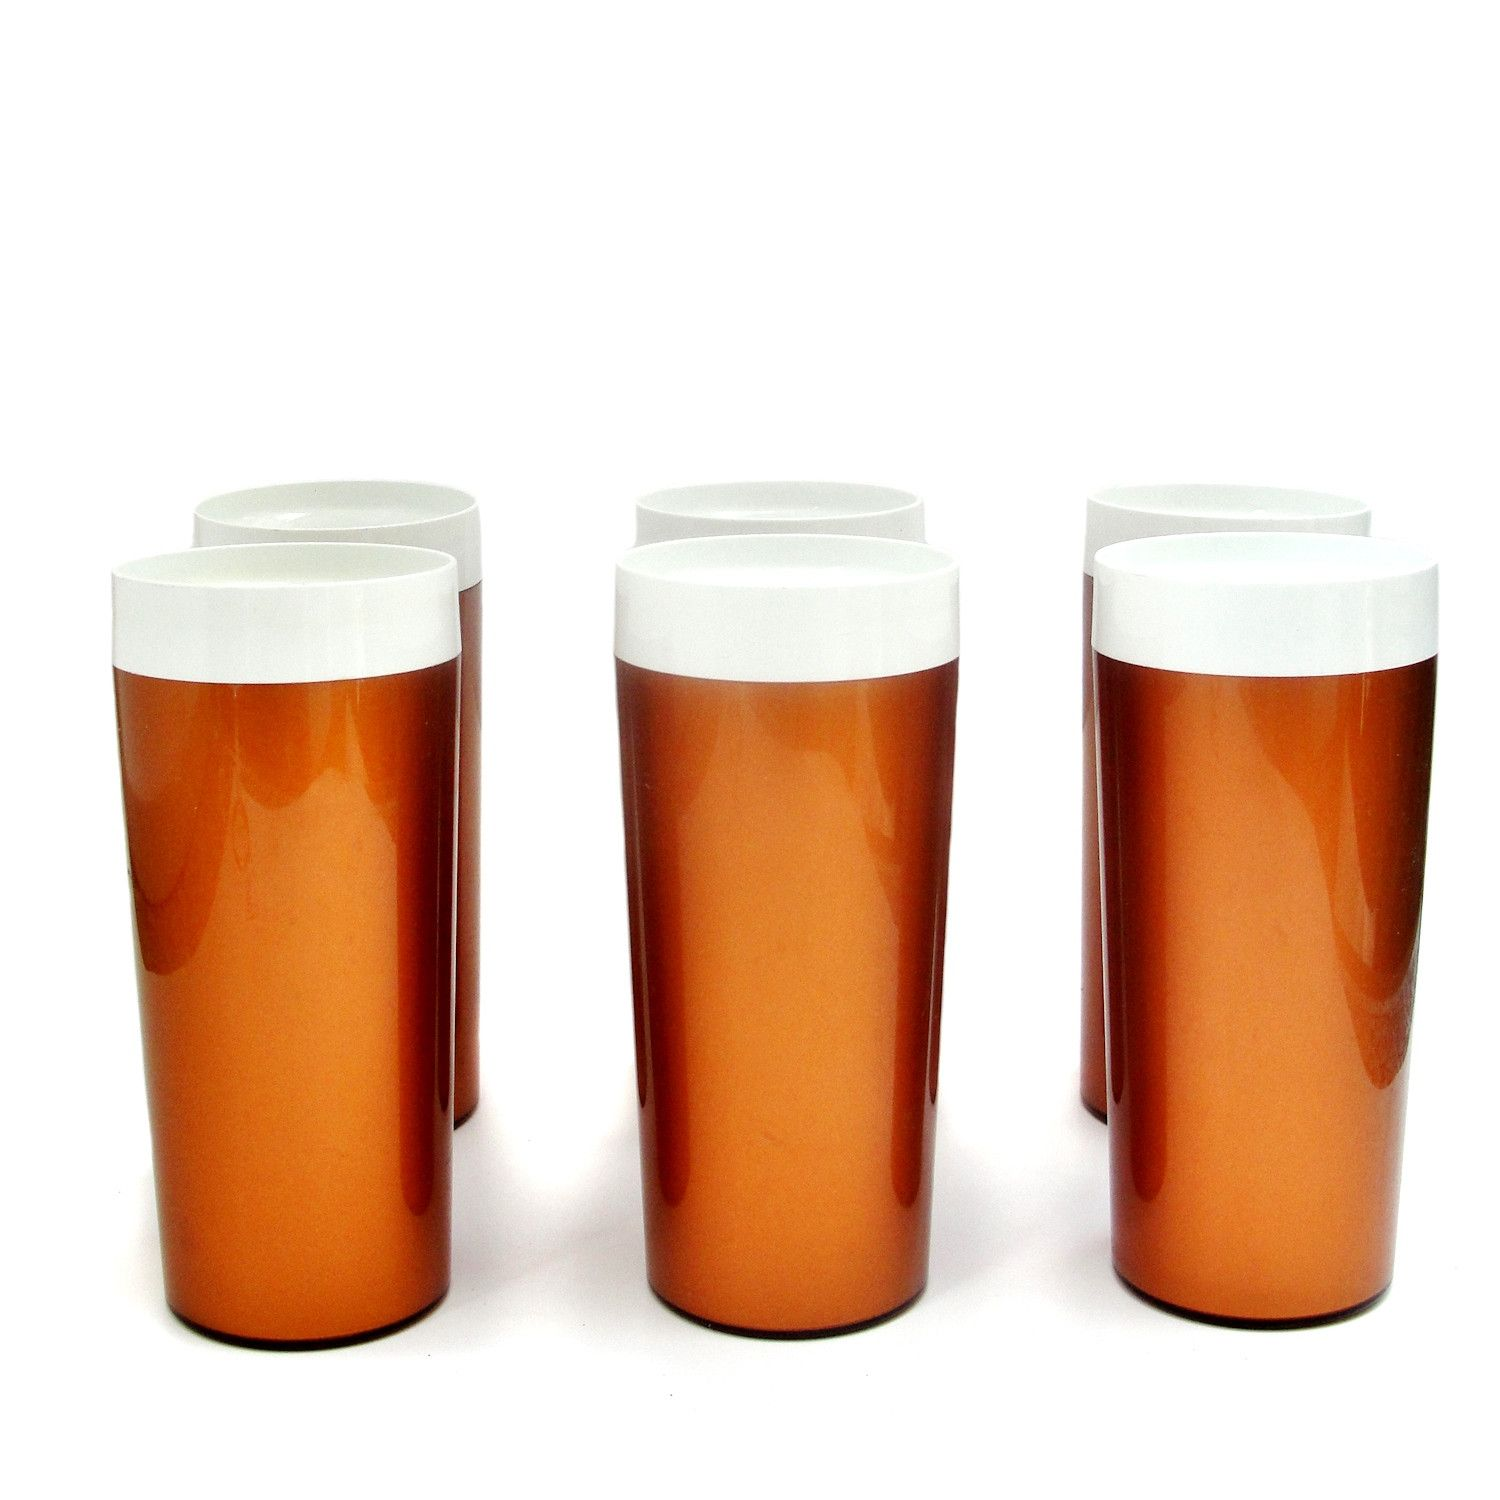 West Bend Insulated Tumblers